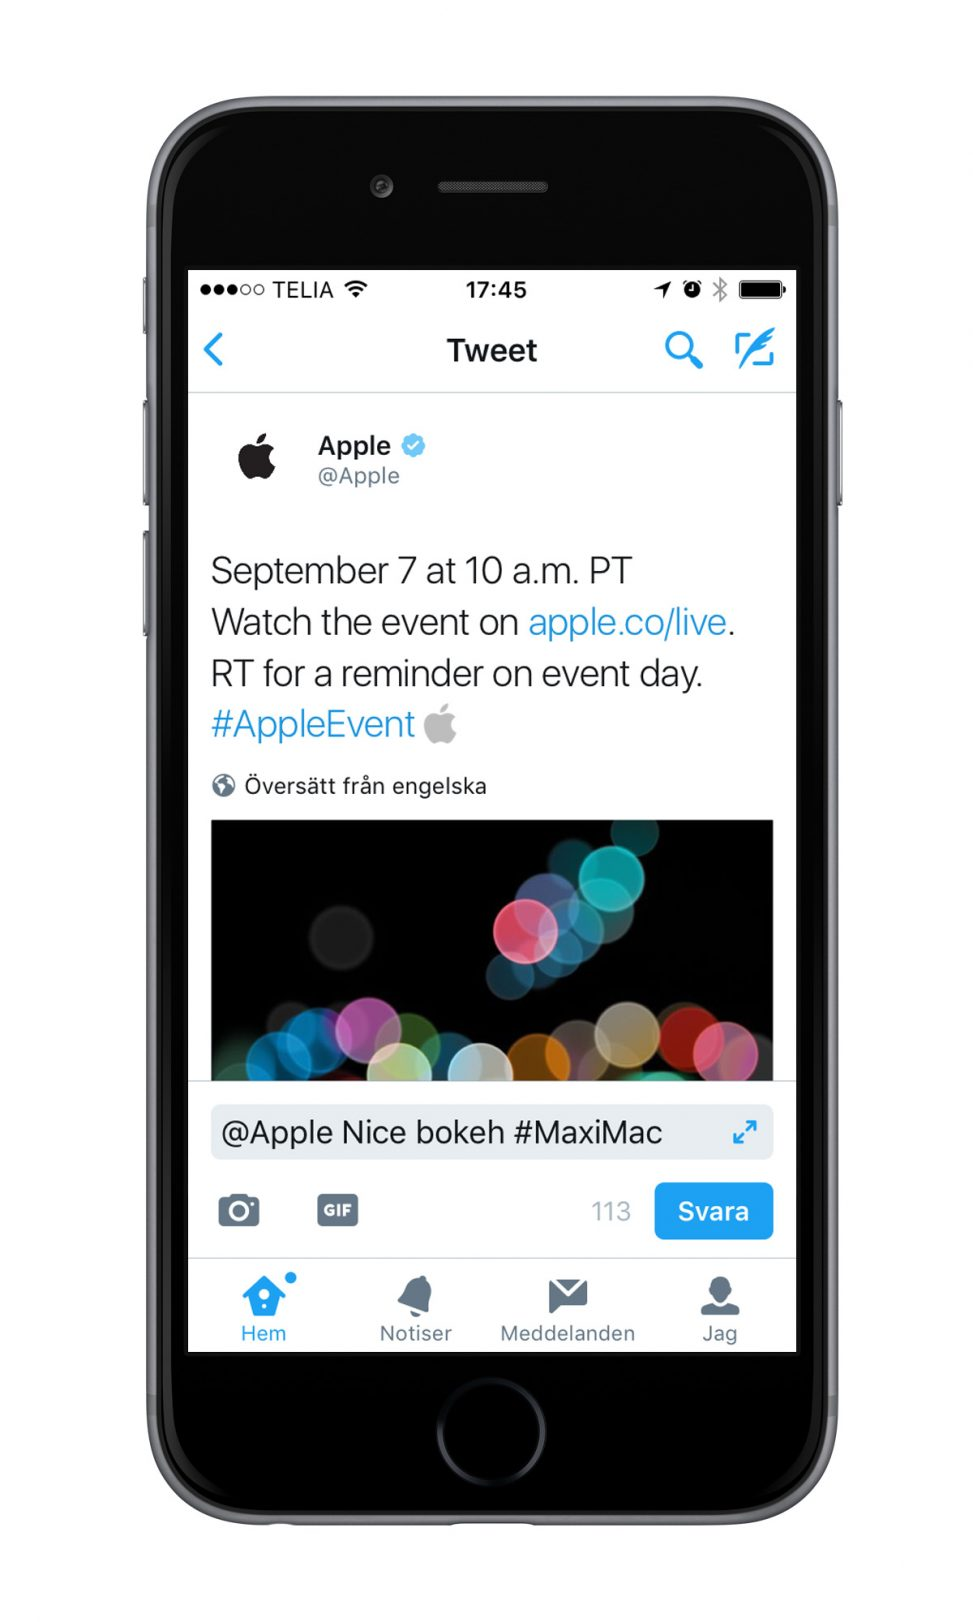 Apple event tweet